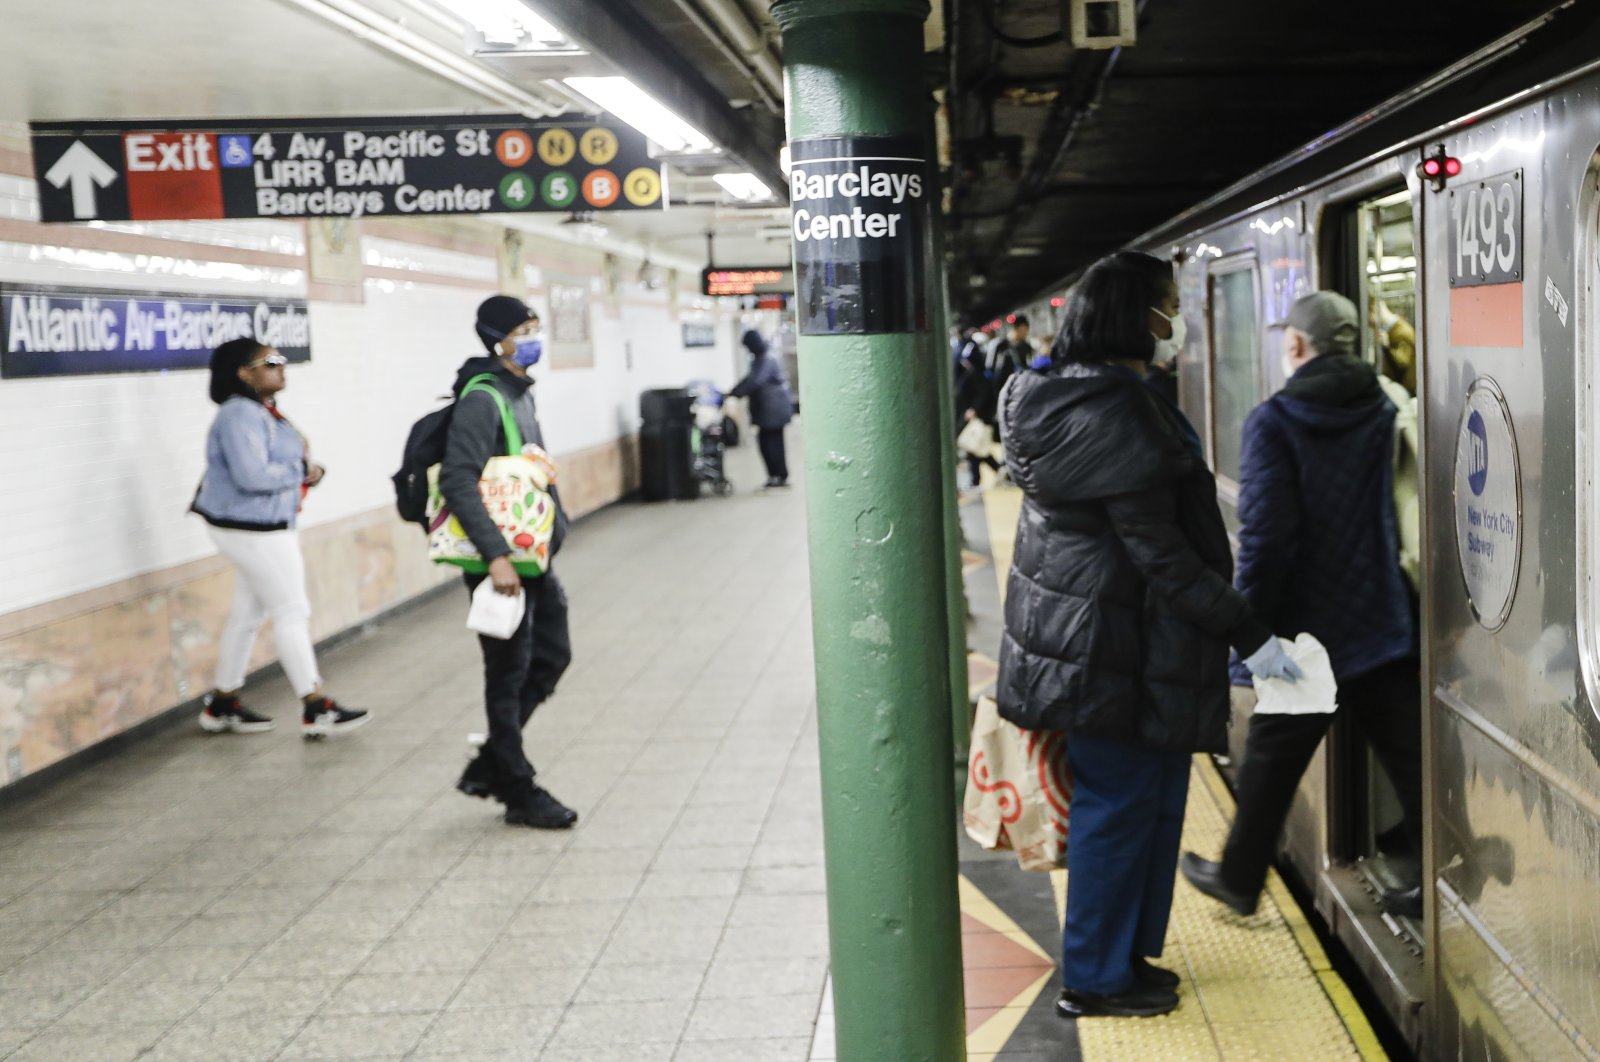 Patrons, wearing masks, board a train at the Atlantic Avenue station in the Brooklyn borough of New York, Tuesday, April 7, 2020. (AP Photo)